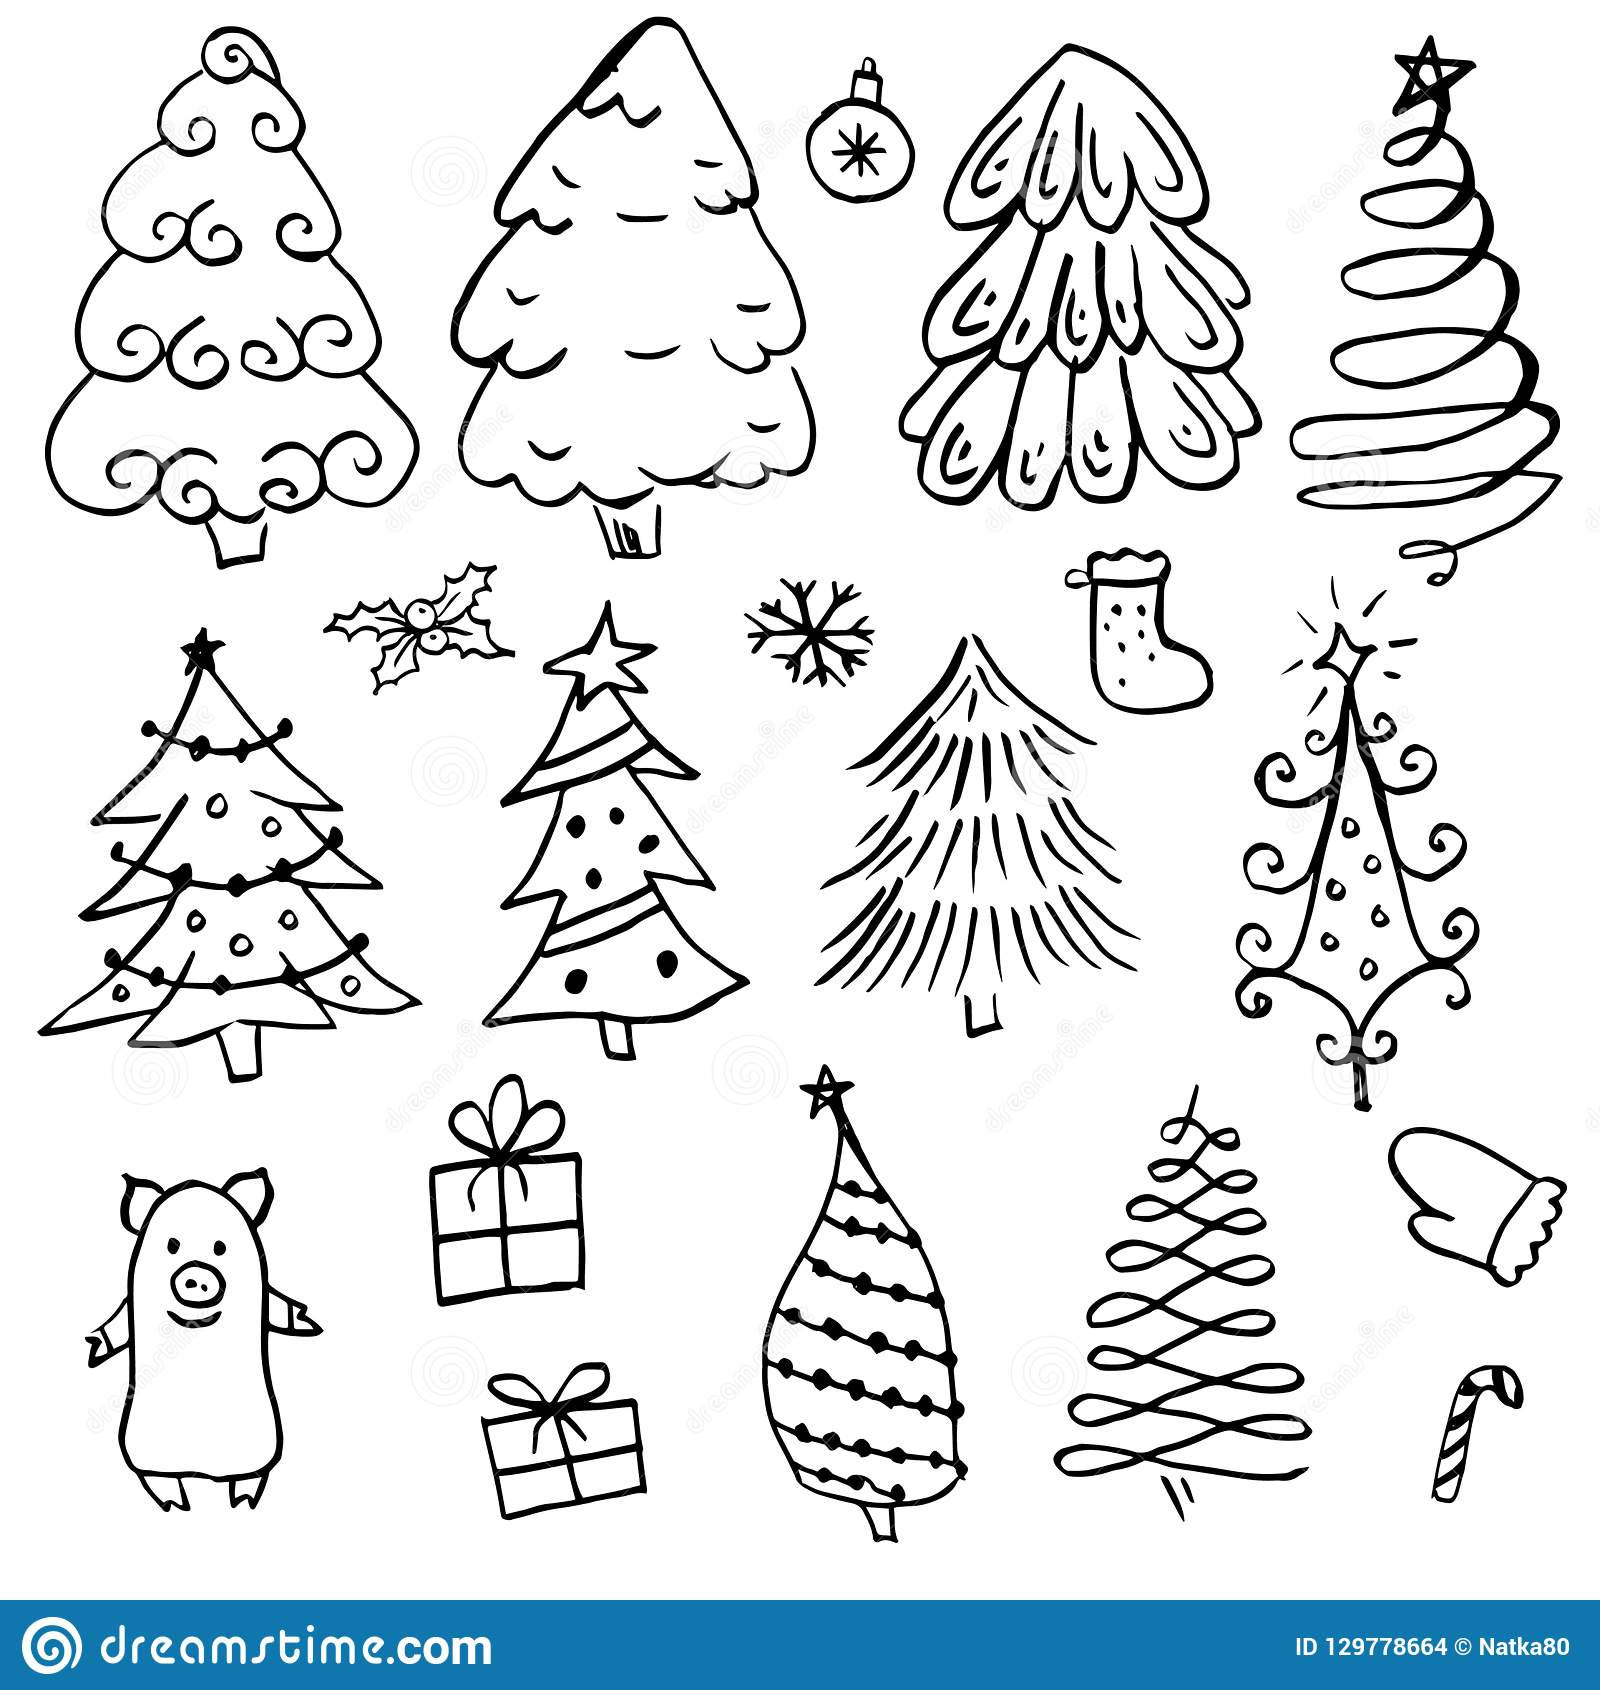 Doodle Different Christmas Tree With Black Outline Stock Vector